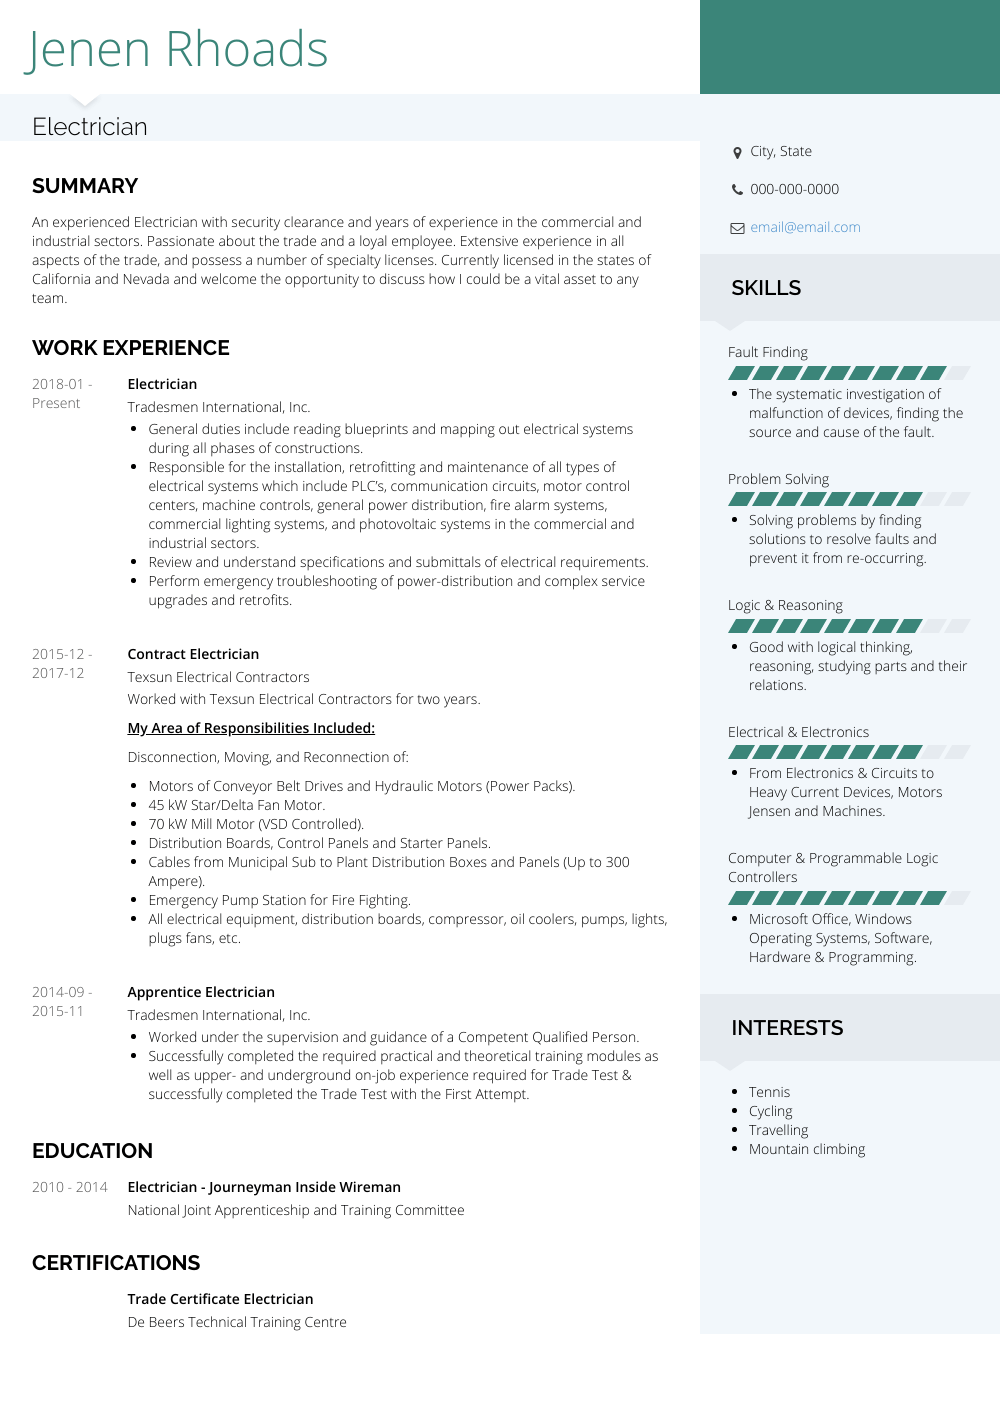 Electrician - Resume Samples and Templates | VisualCV